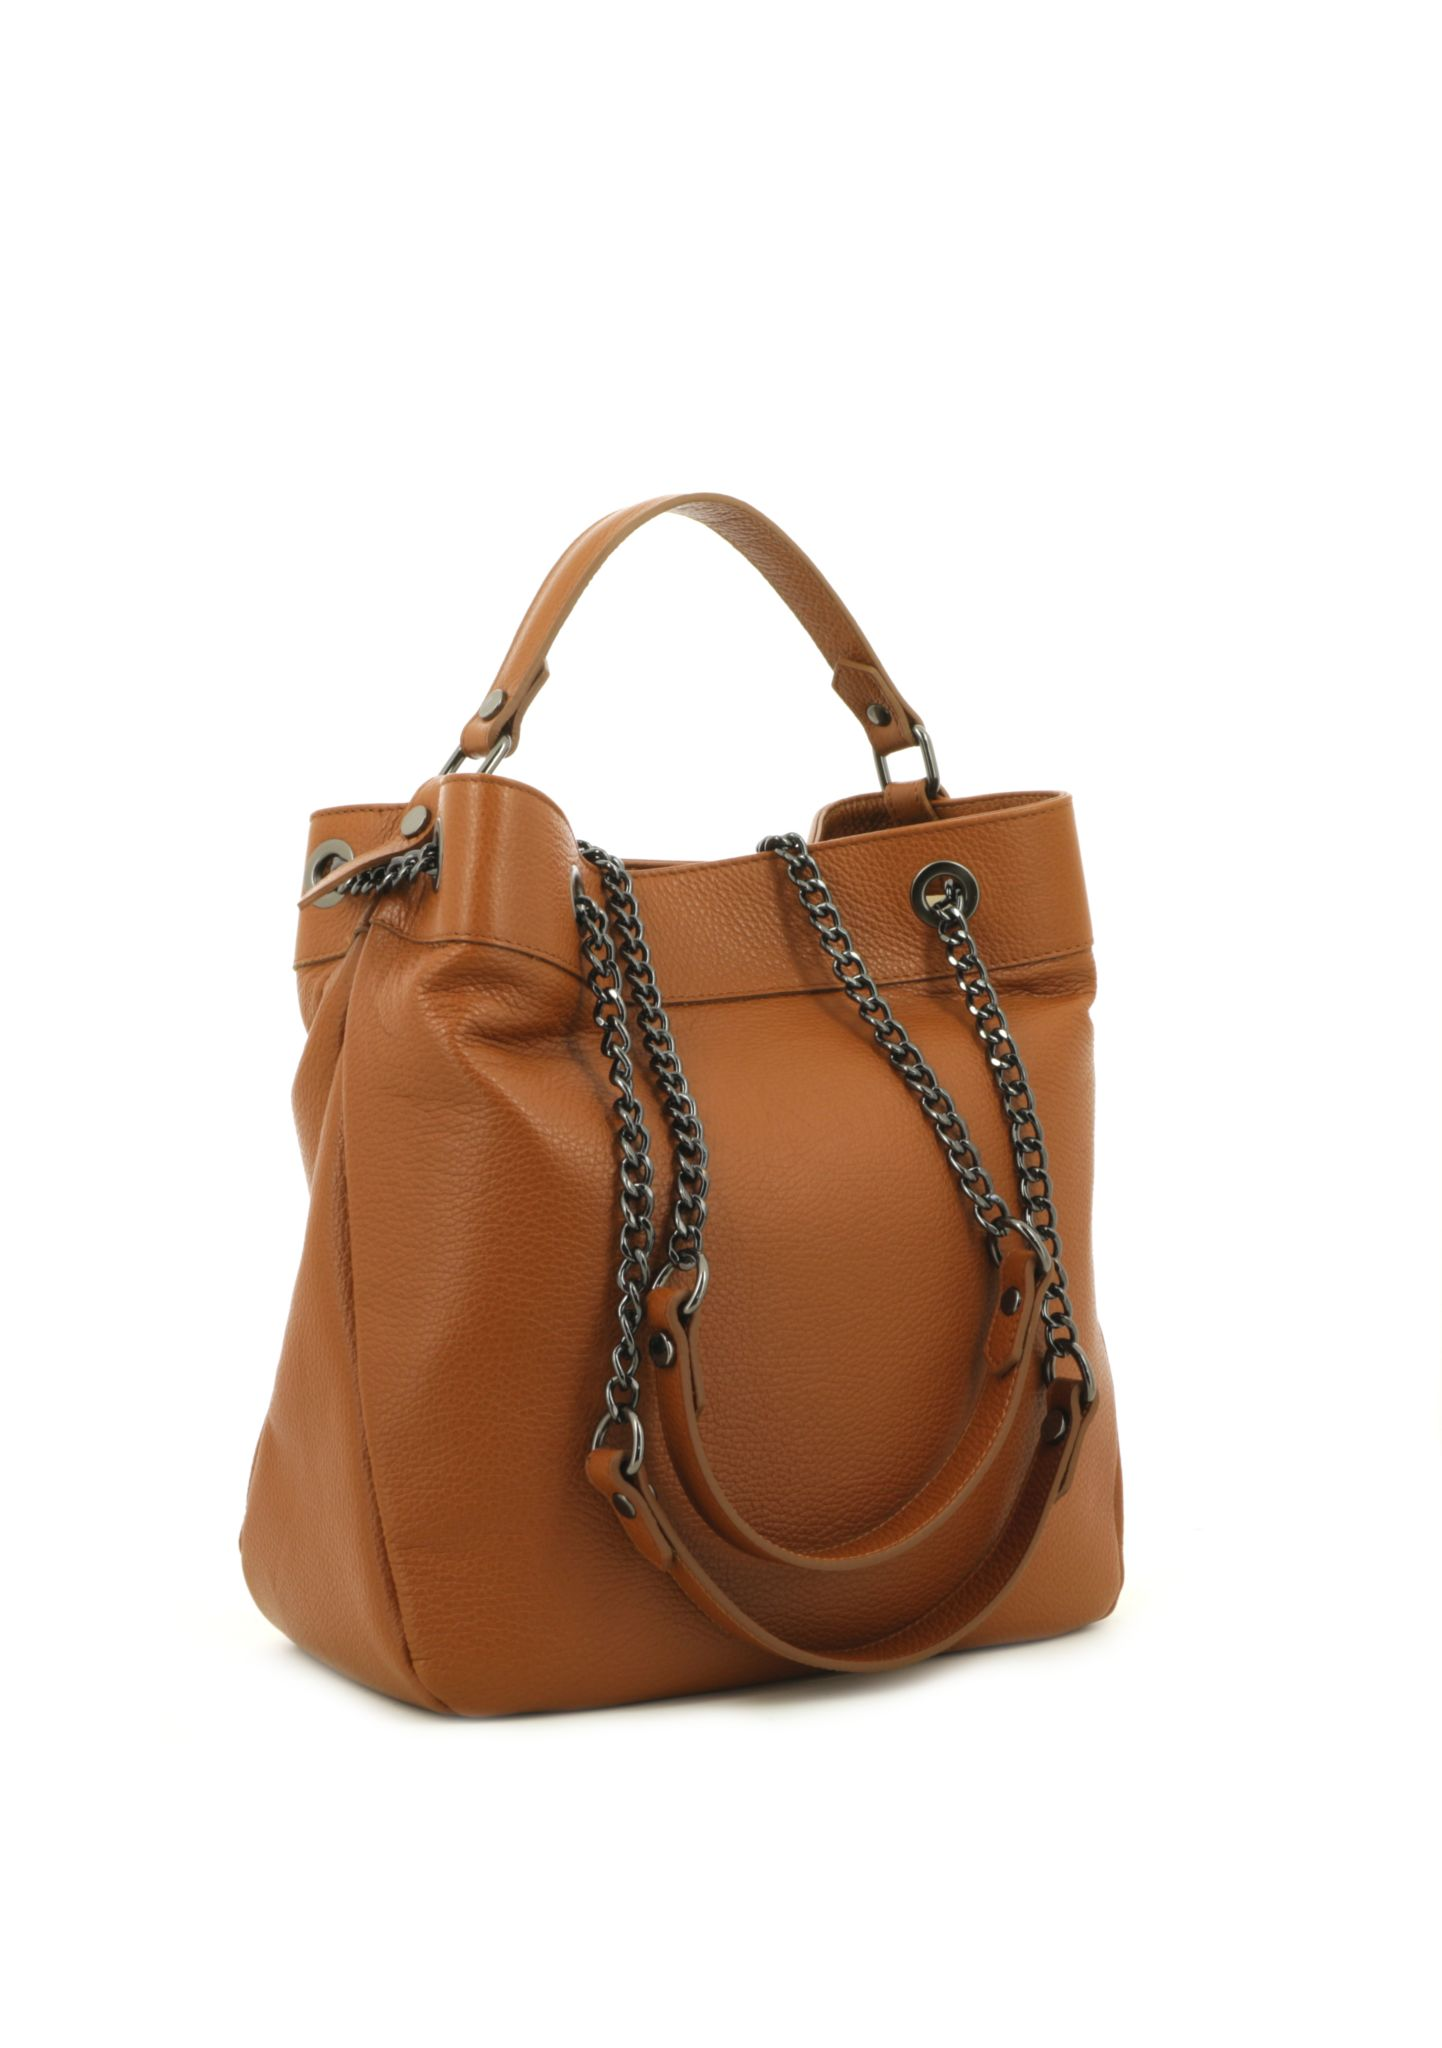 Cognac Shoulder Bag With Chain Strap 033 detail 1